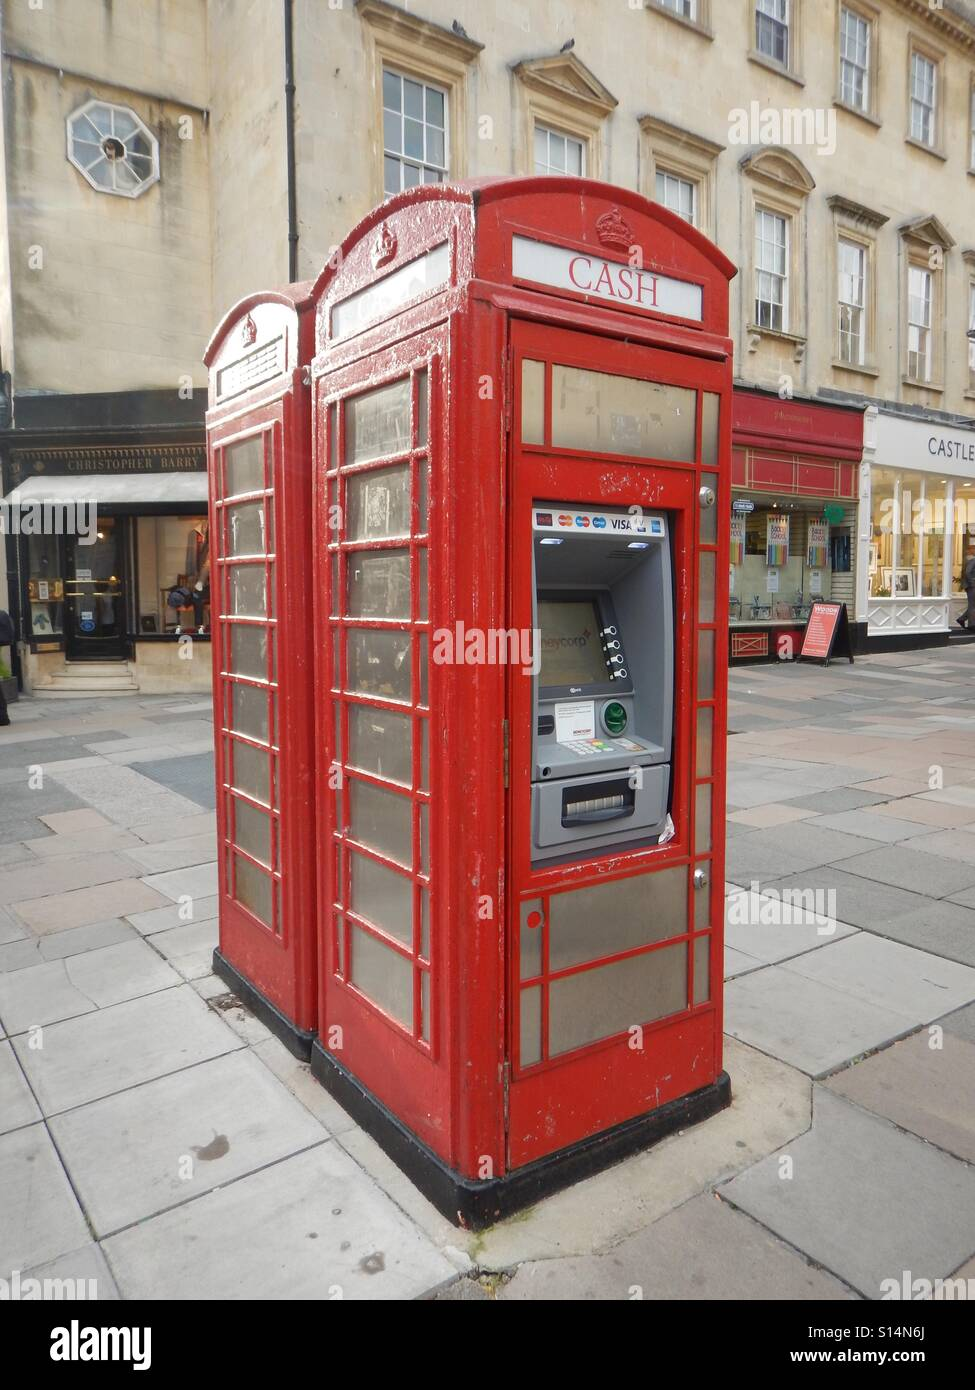 Old red telephone box in Bath, England which has been converted into a cash point machine. - Stock Image